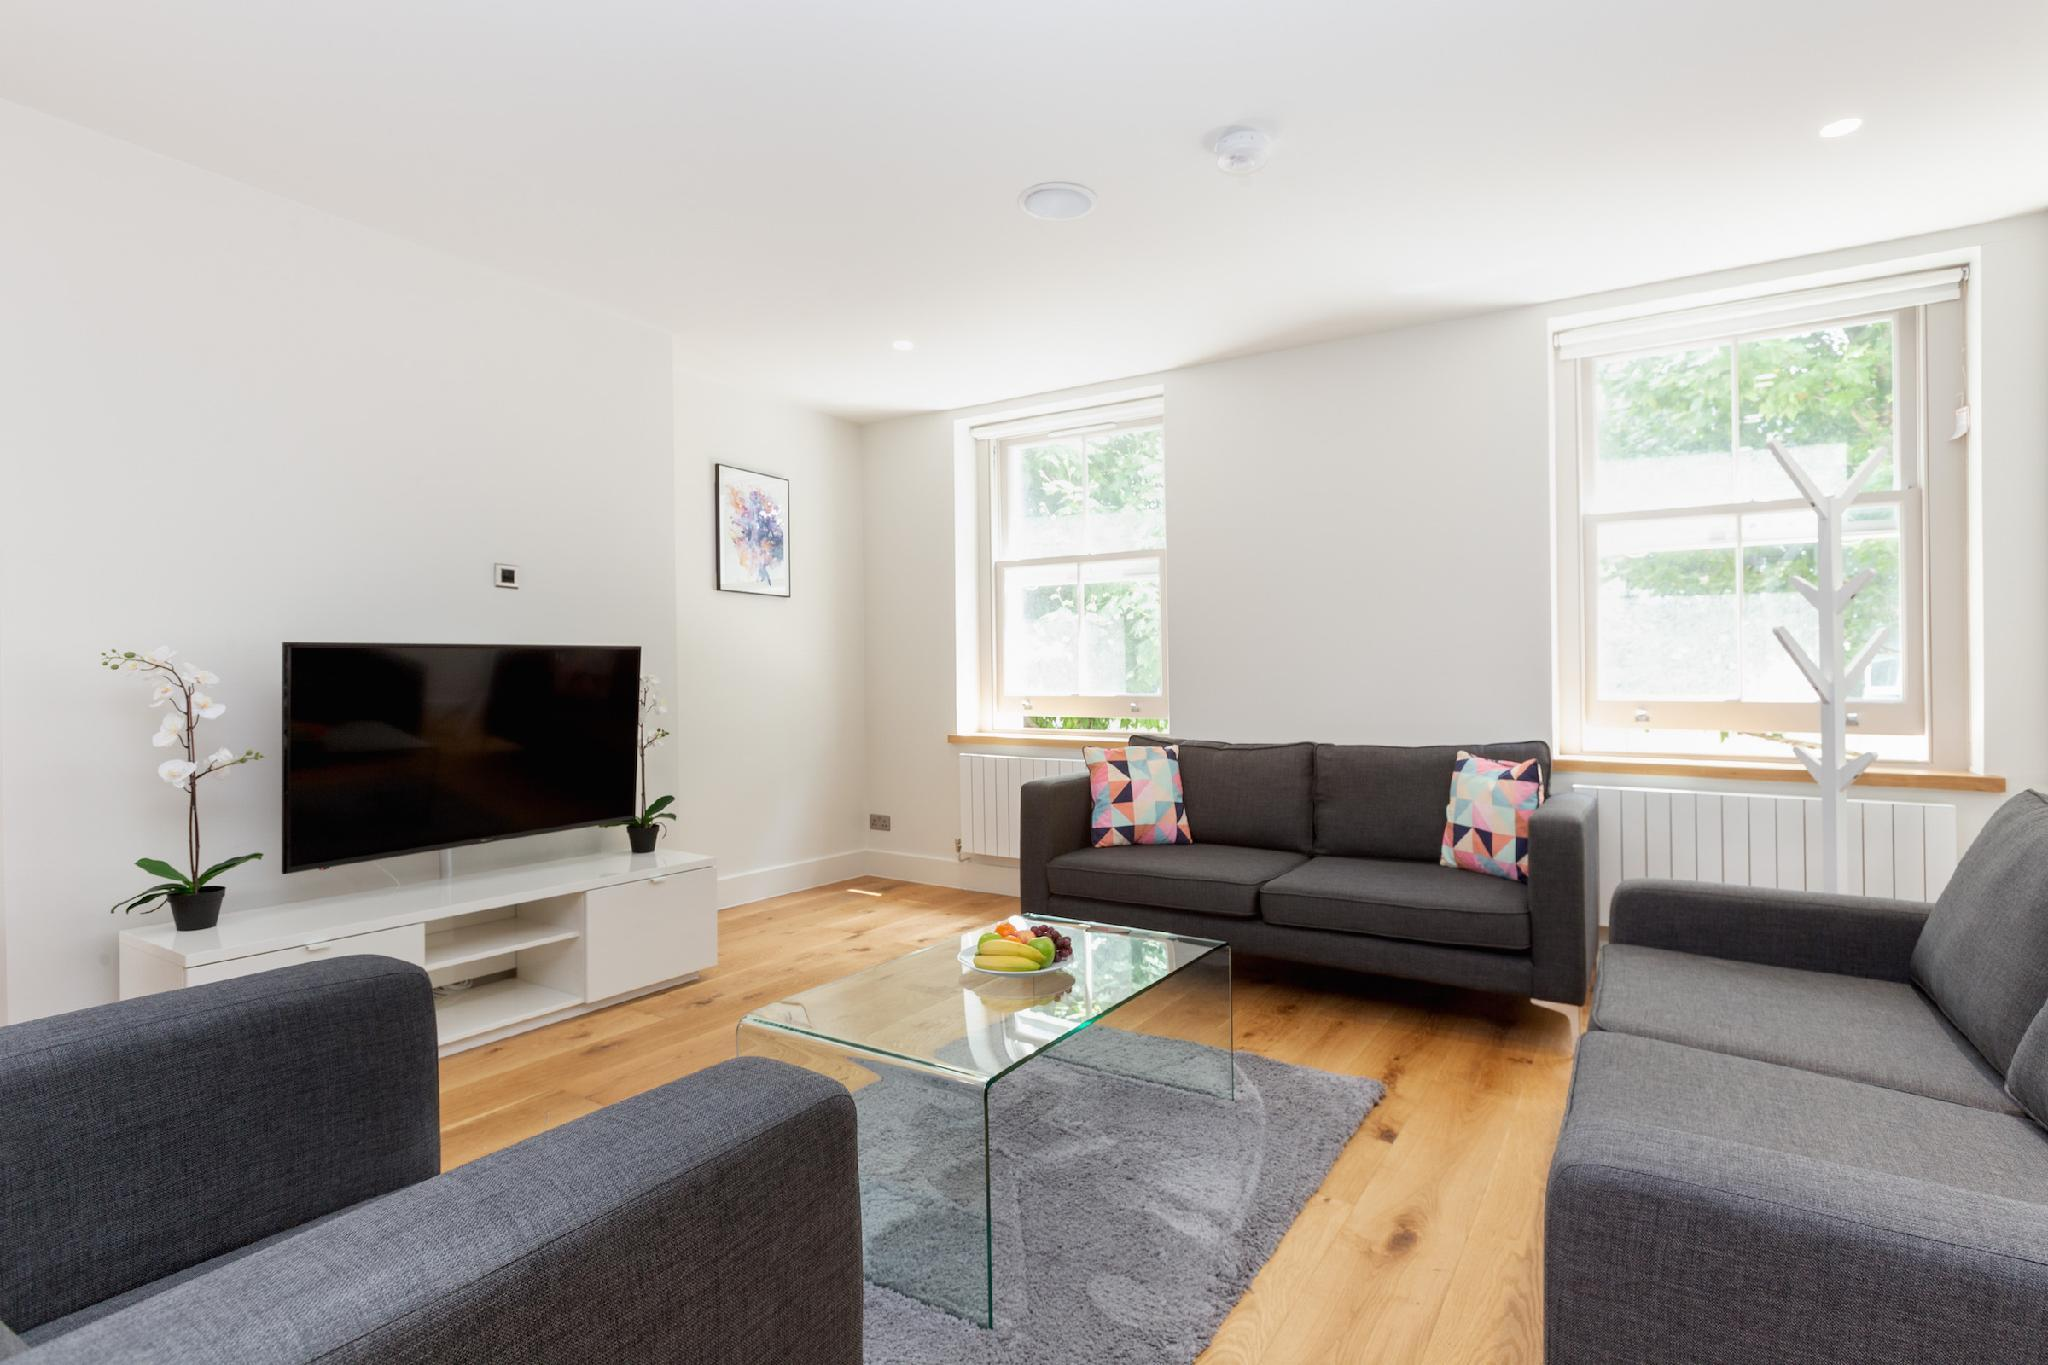 SOHO - BEAUTIFUL 2BR IN THE HEART OF FITZROVIA